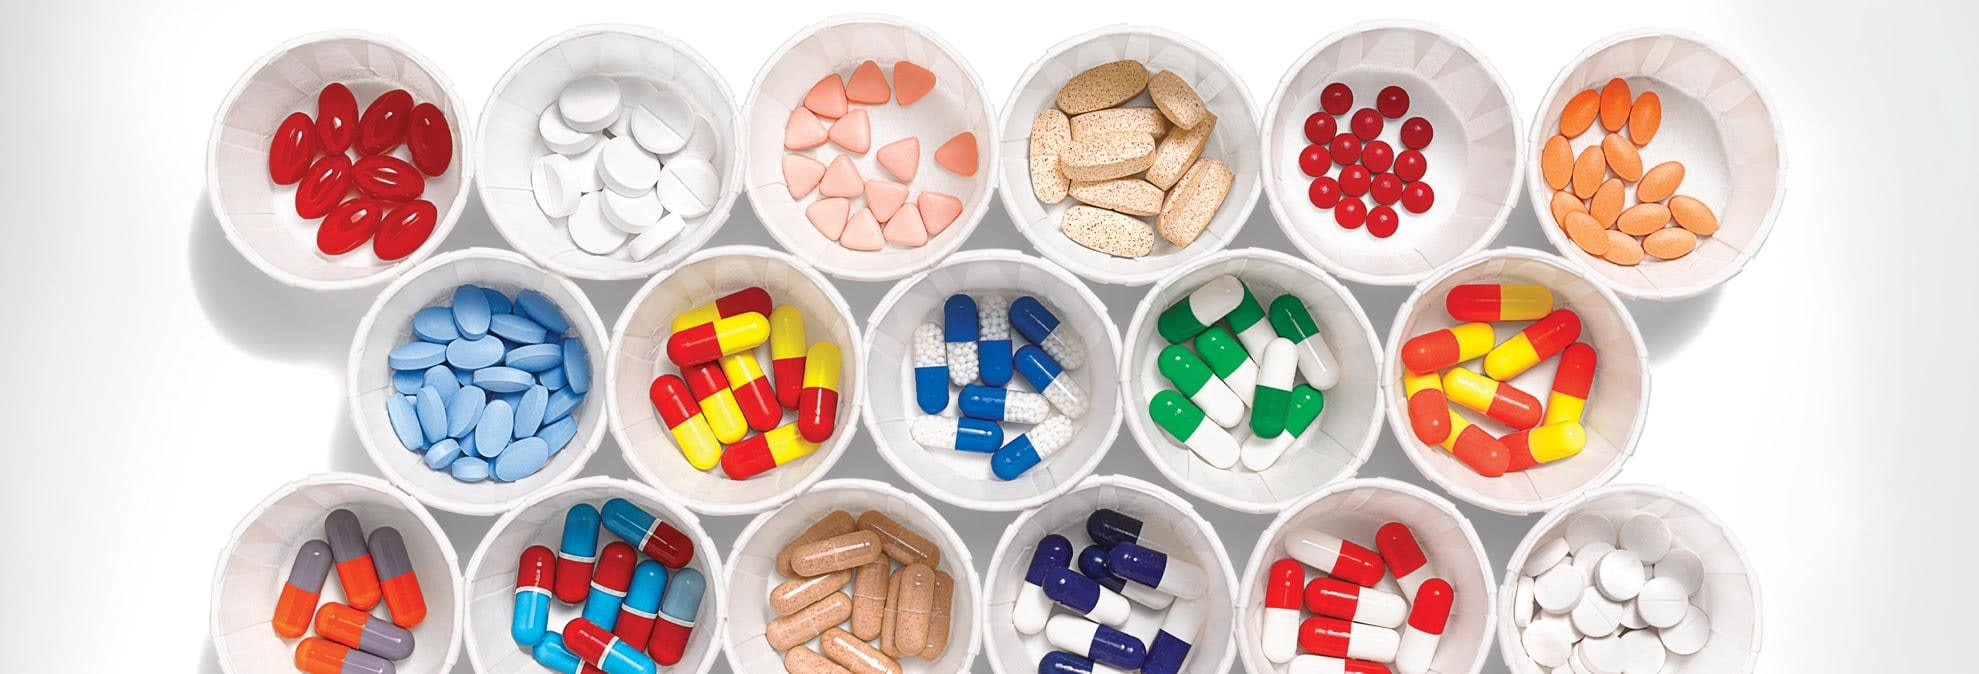 America S Love Affair With Prescription Medication Consumer Reports Images, Photos, Reviews